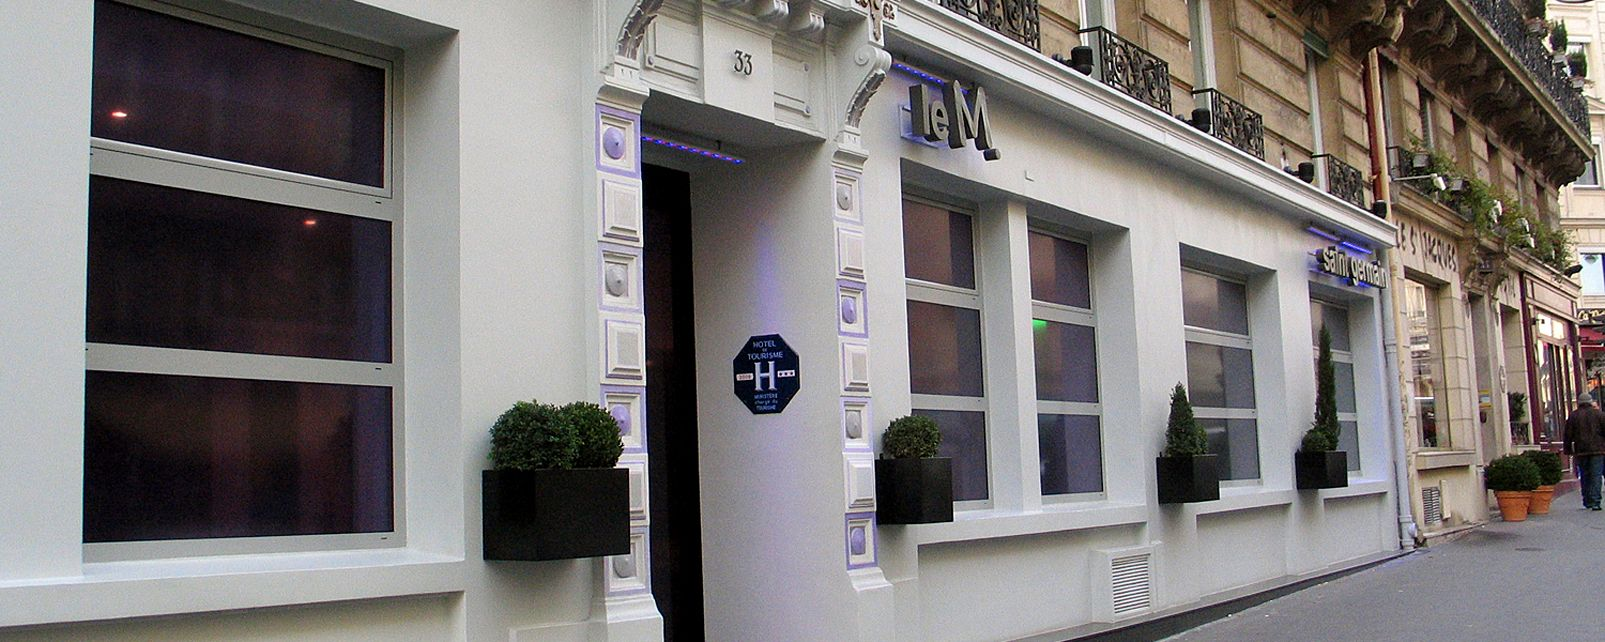 Hotel moderne st germain paris for Hotel moderne paris